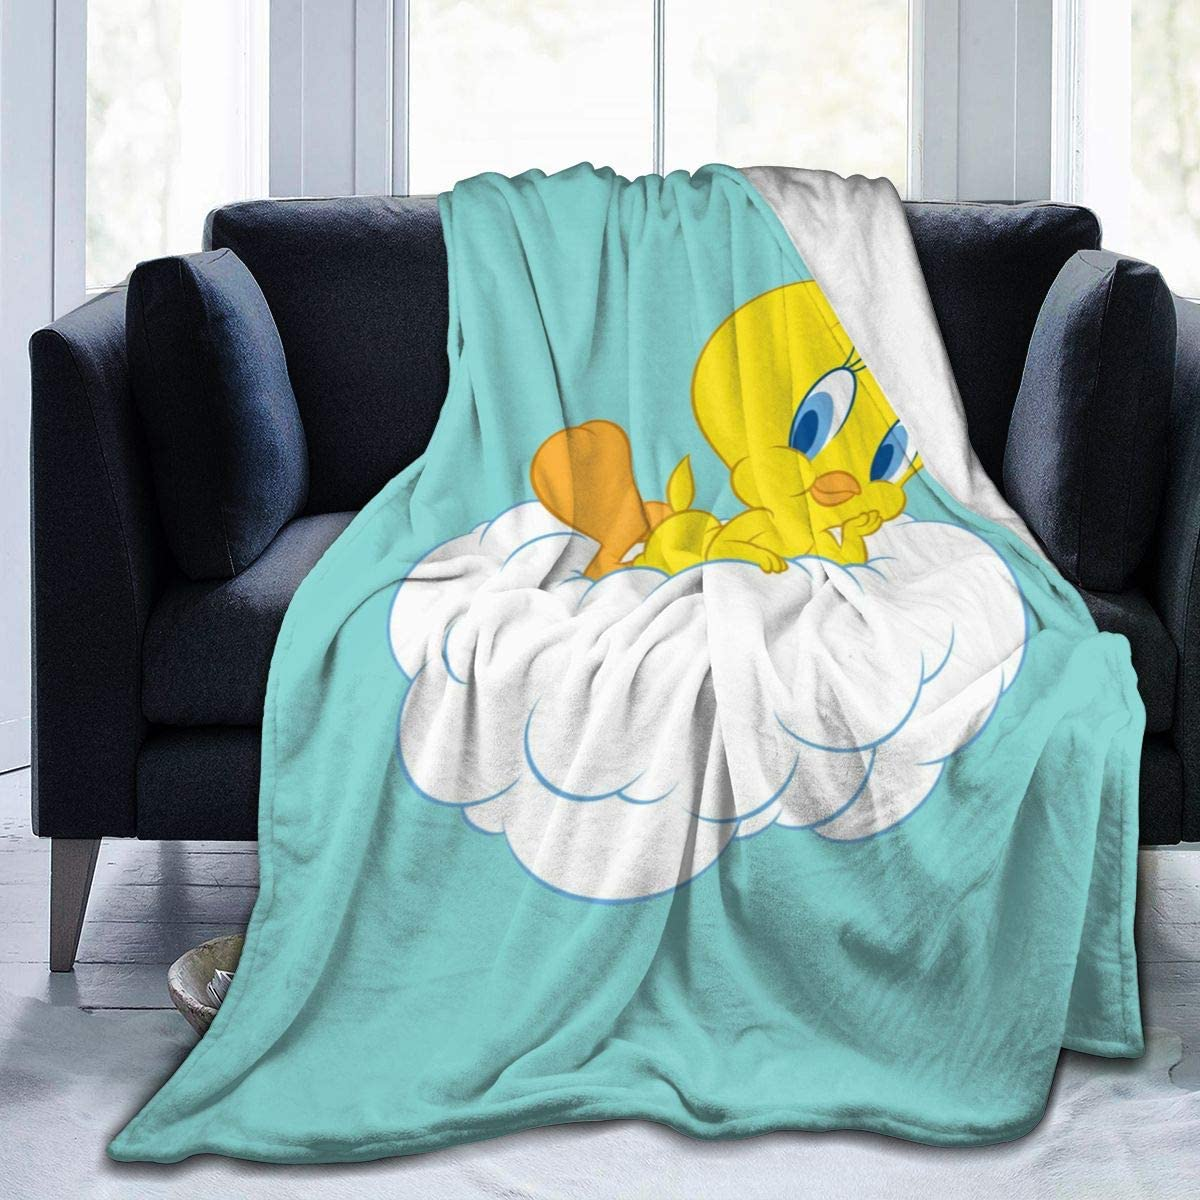 Tweety Bird Sherpa Bed Blanket